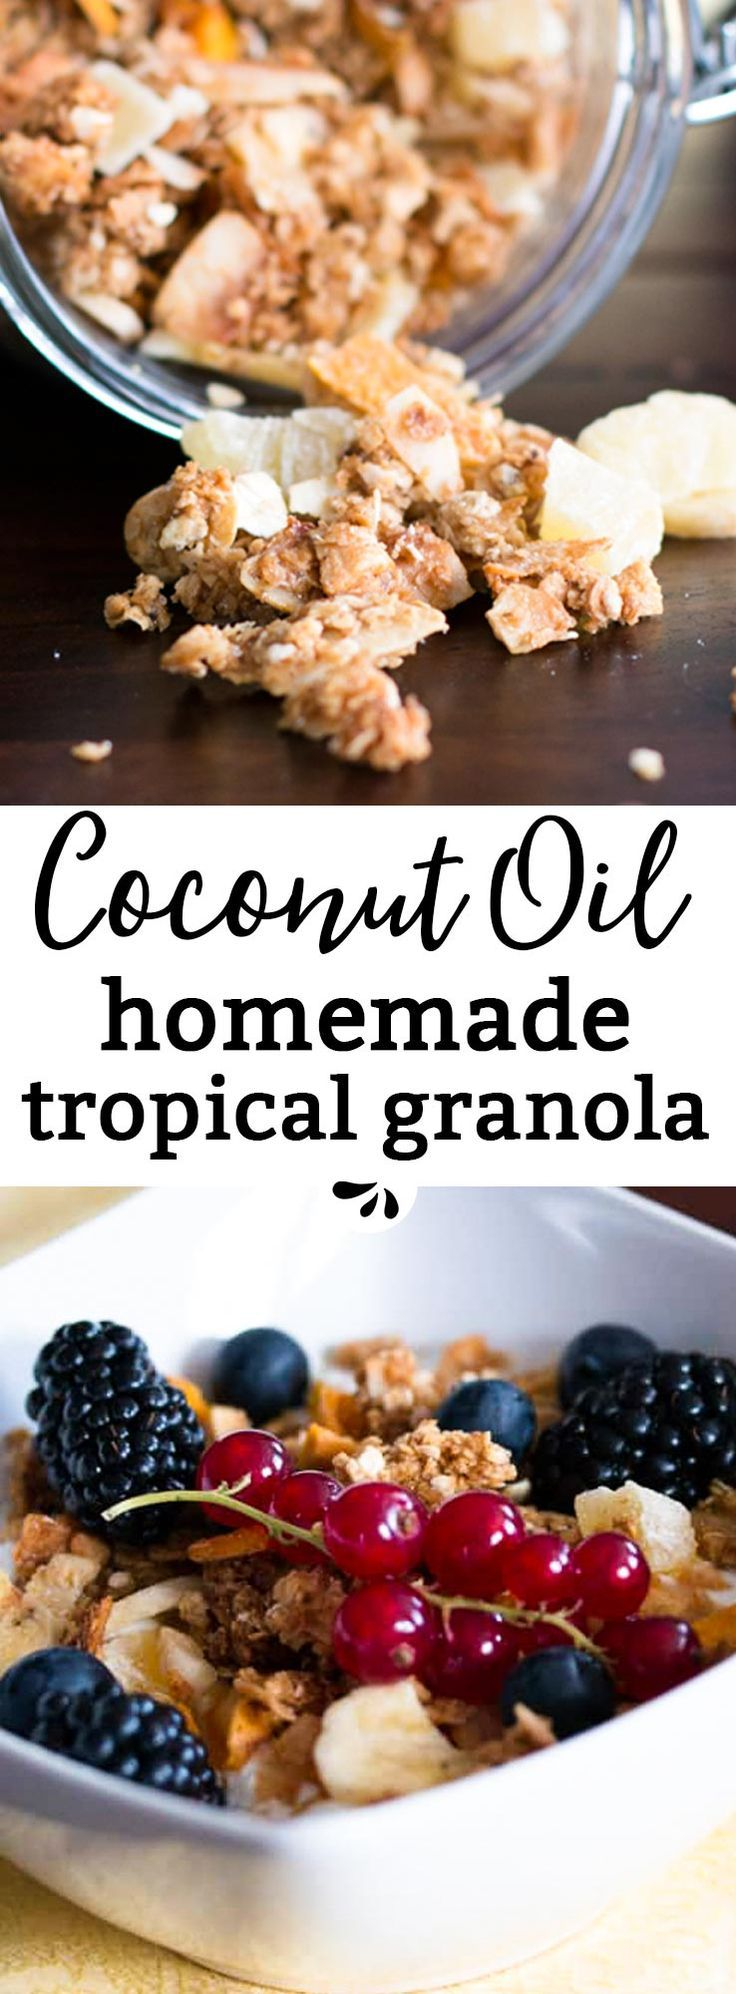 Homemade Tropical Coconut Oil Granola, a healthy, clean eating breakfast addition which will leave you dreaming of the Caribbean! It's easy to make and perfect for lazy summer breakfasts. The recipe makes a medium batch, so you won't be left with stale granola. The clusters get really big and the crunch is absolutely amazing! via @savorynothings